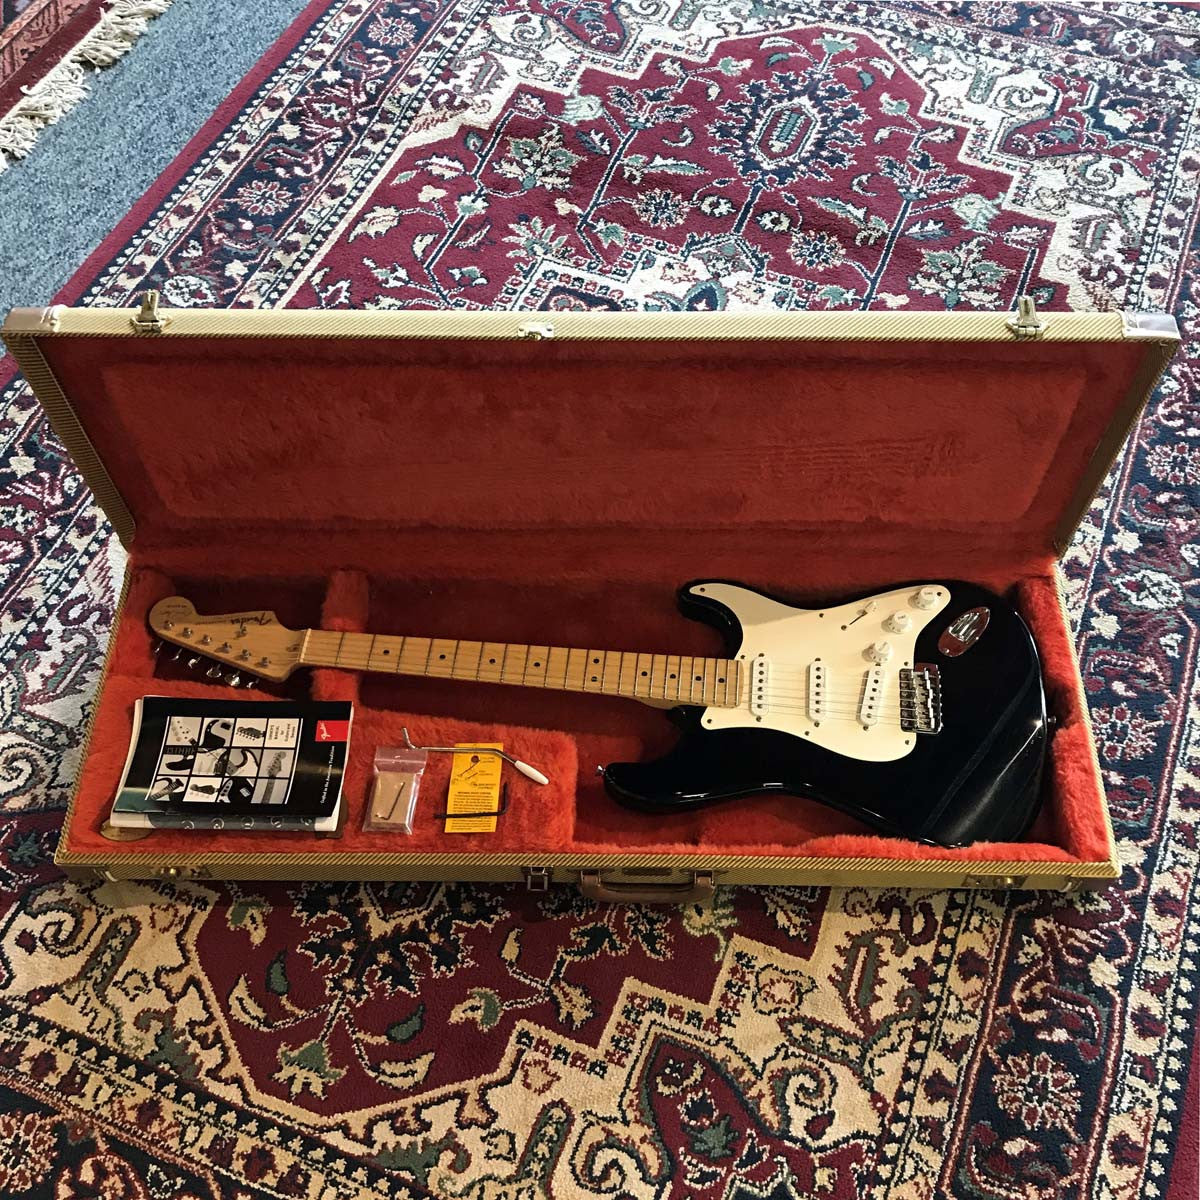 Fender Stratocaster Blackie Eric Clapton Signature Best 2018 Strat Wiring Diagrams Diagram Trusted